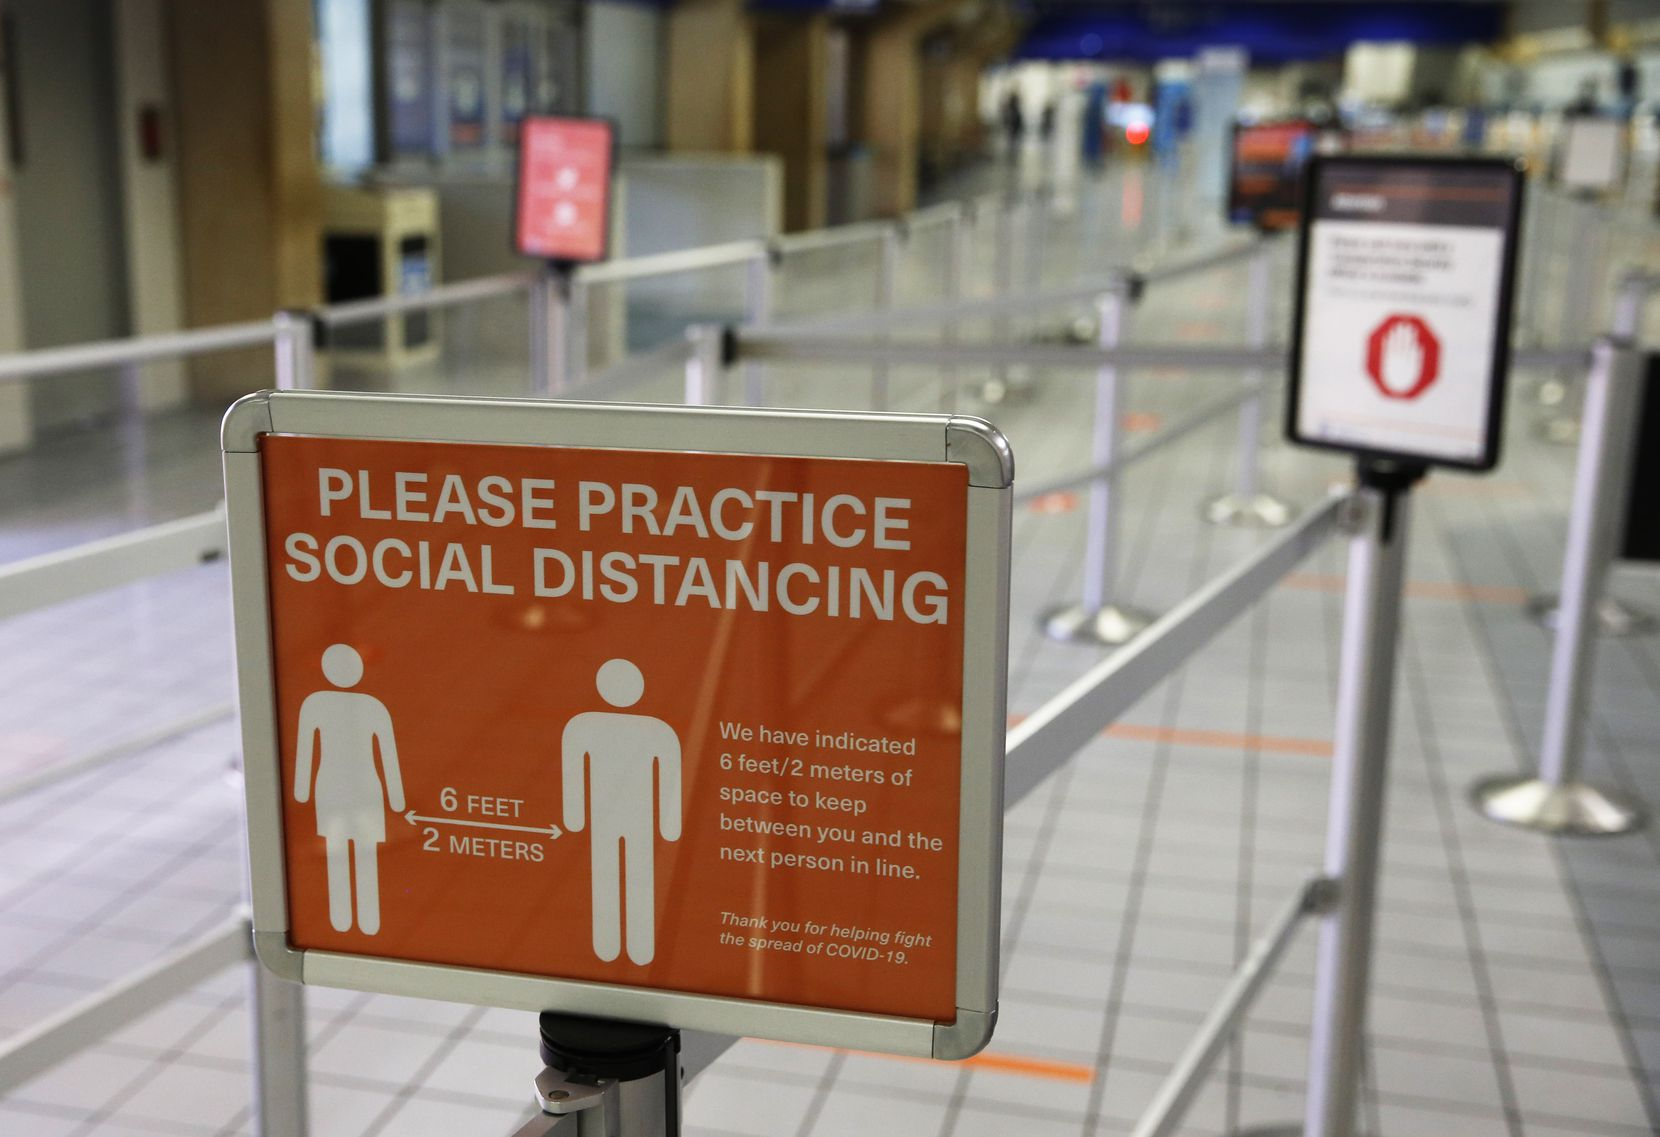 A sign reminds people to practice social distancing in the security checkpoint line at DFW International Airport on Wednesday, April 8, 2020.